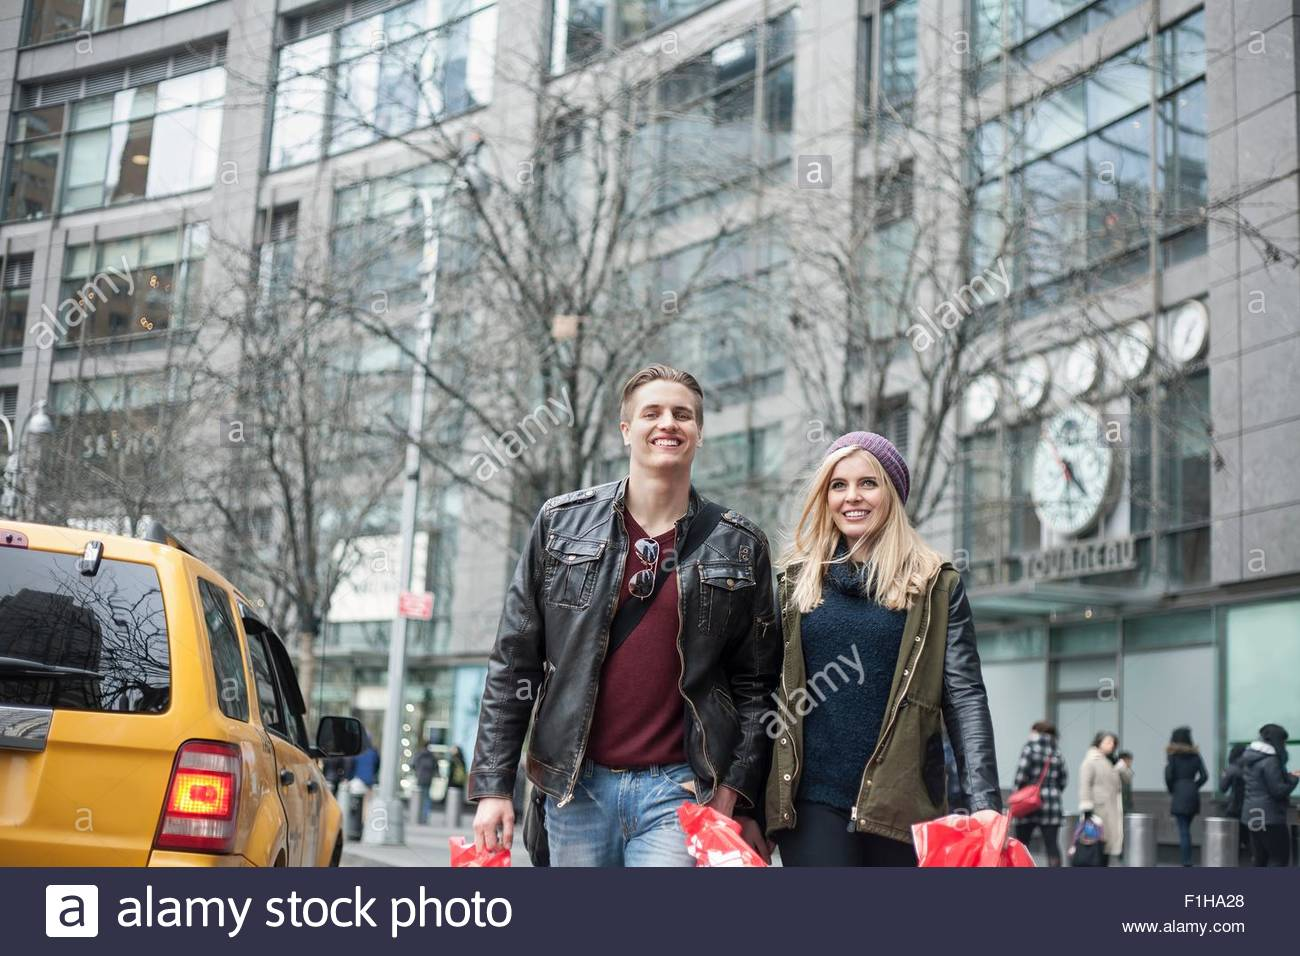 Young couple strolling with shopping bags on street,  New York, USA - Stock Image